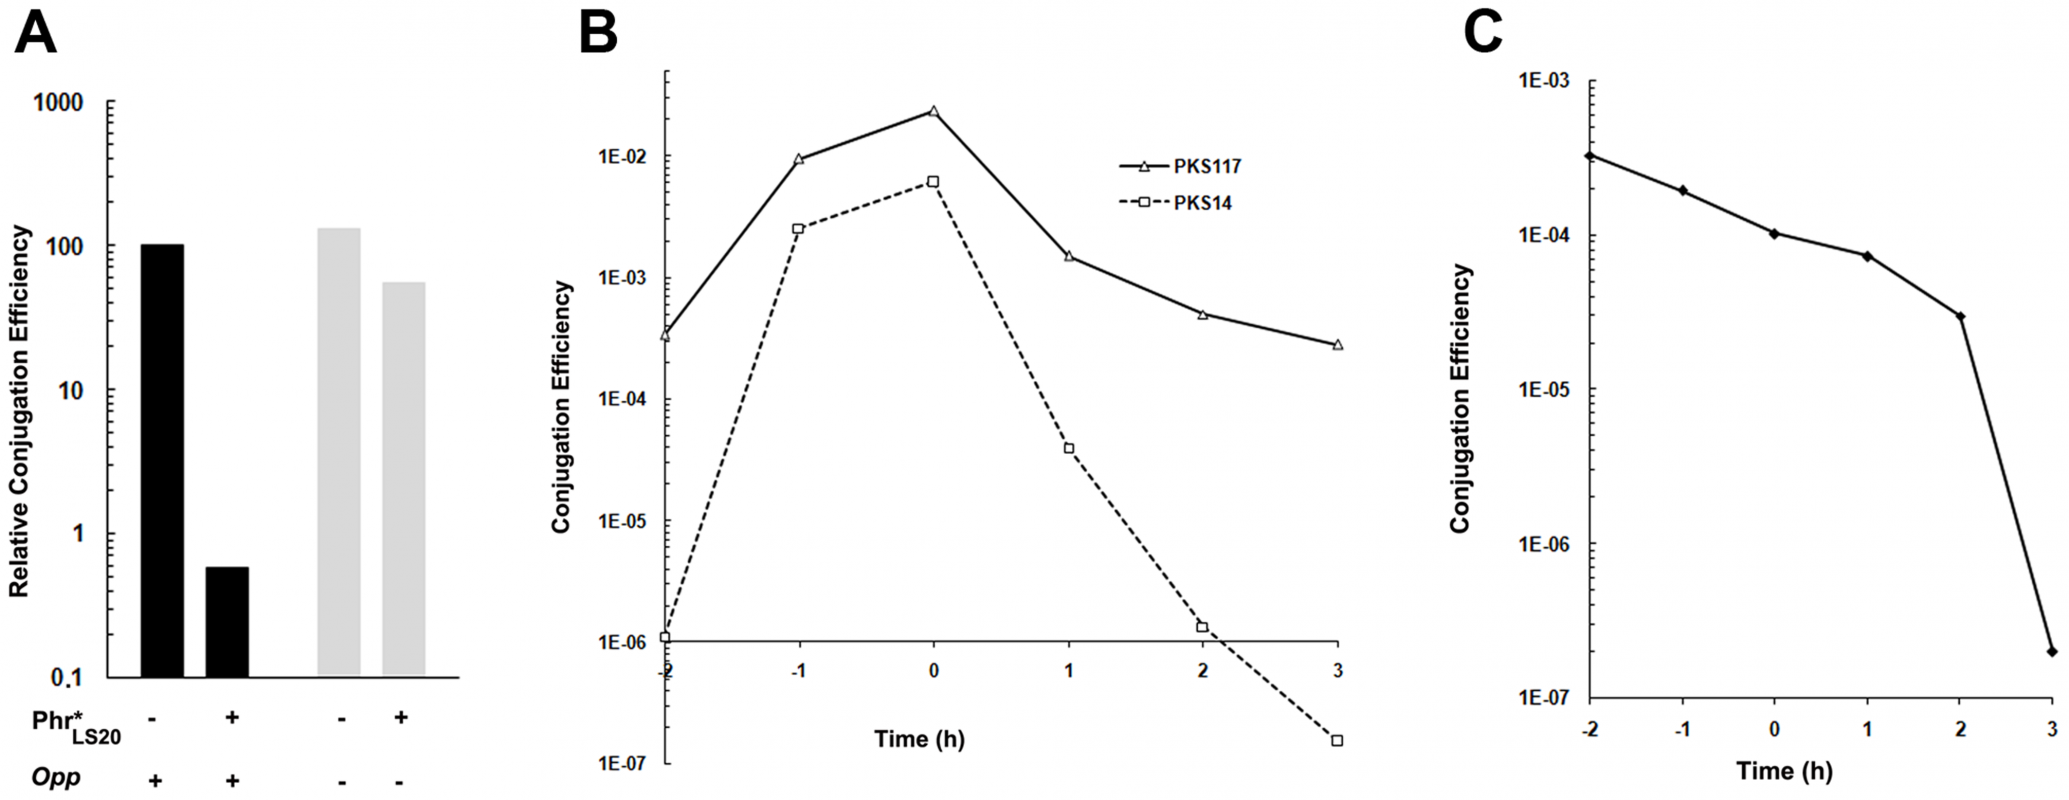 Phr*<sub>LS20</sub> pentapeptide inhibits conjugation in an <i>opp</i> dependent manner.